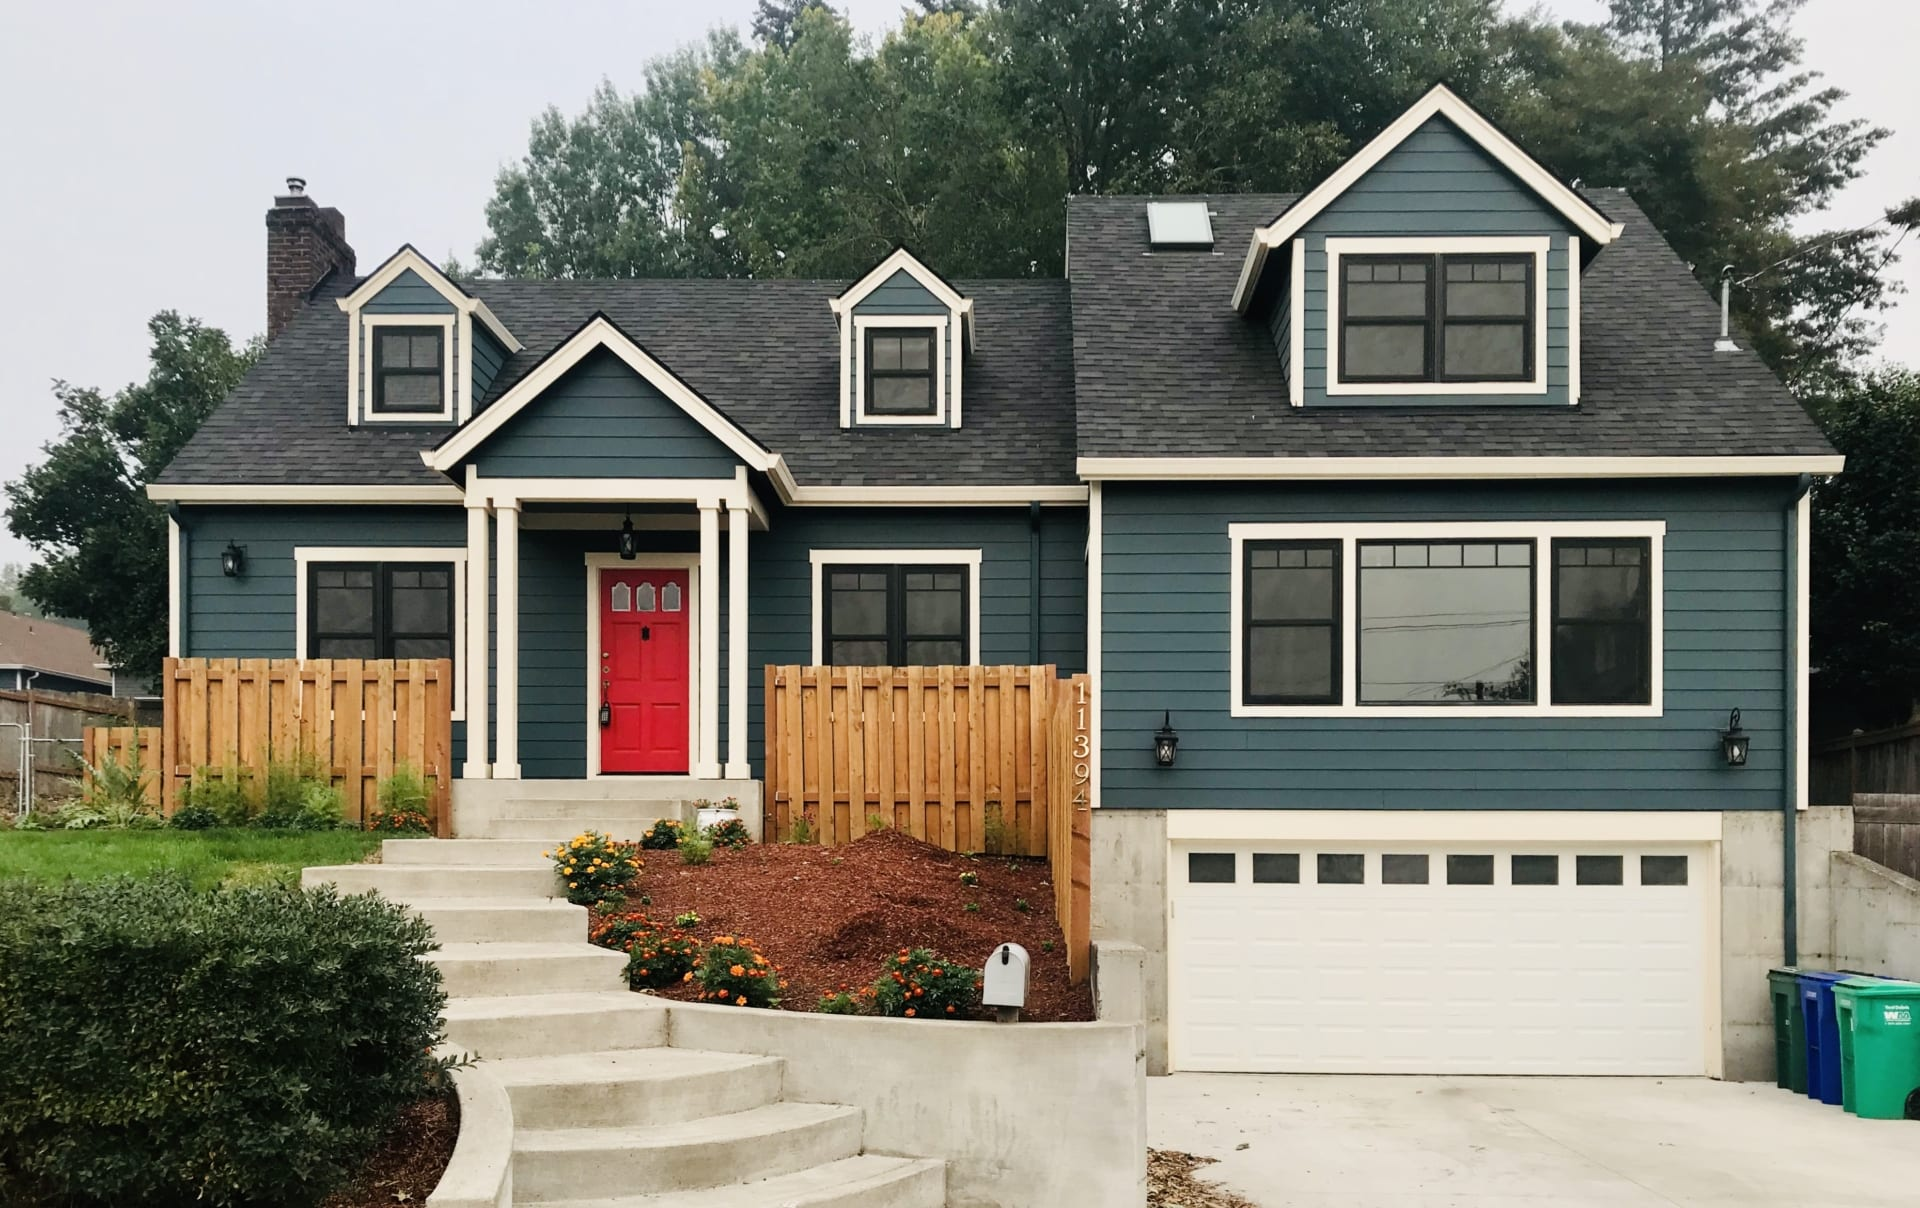 Milwaukie home after new siding and roofing installation